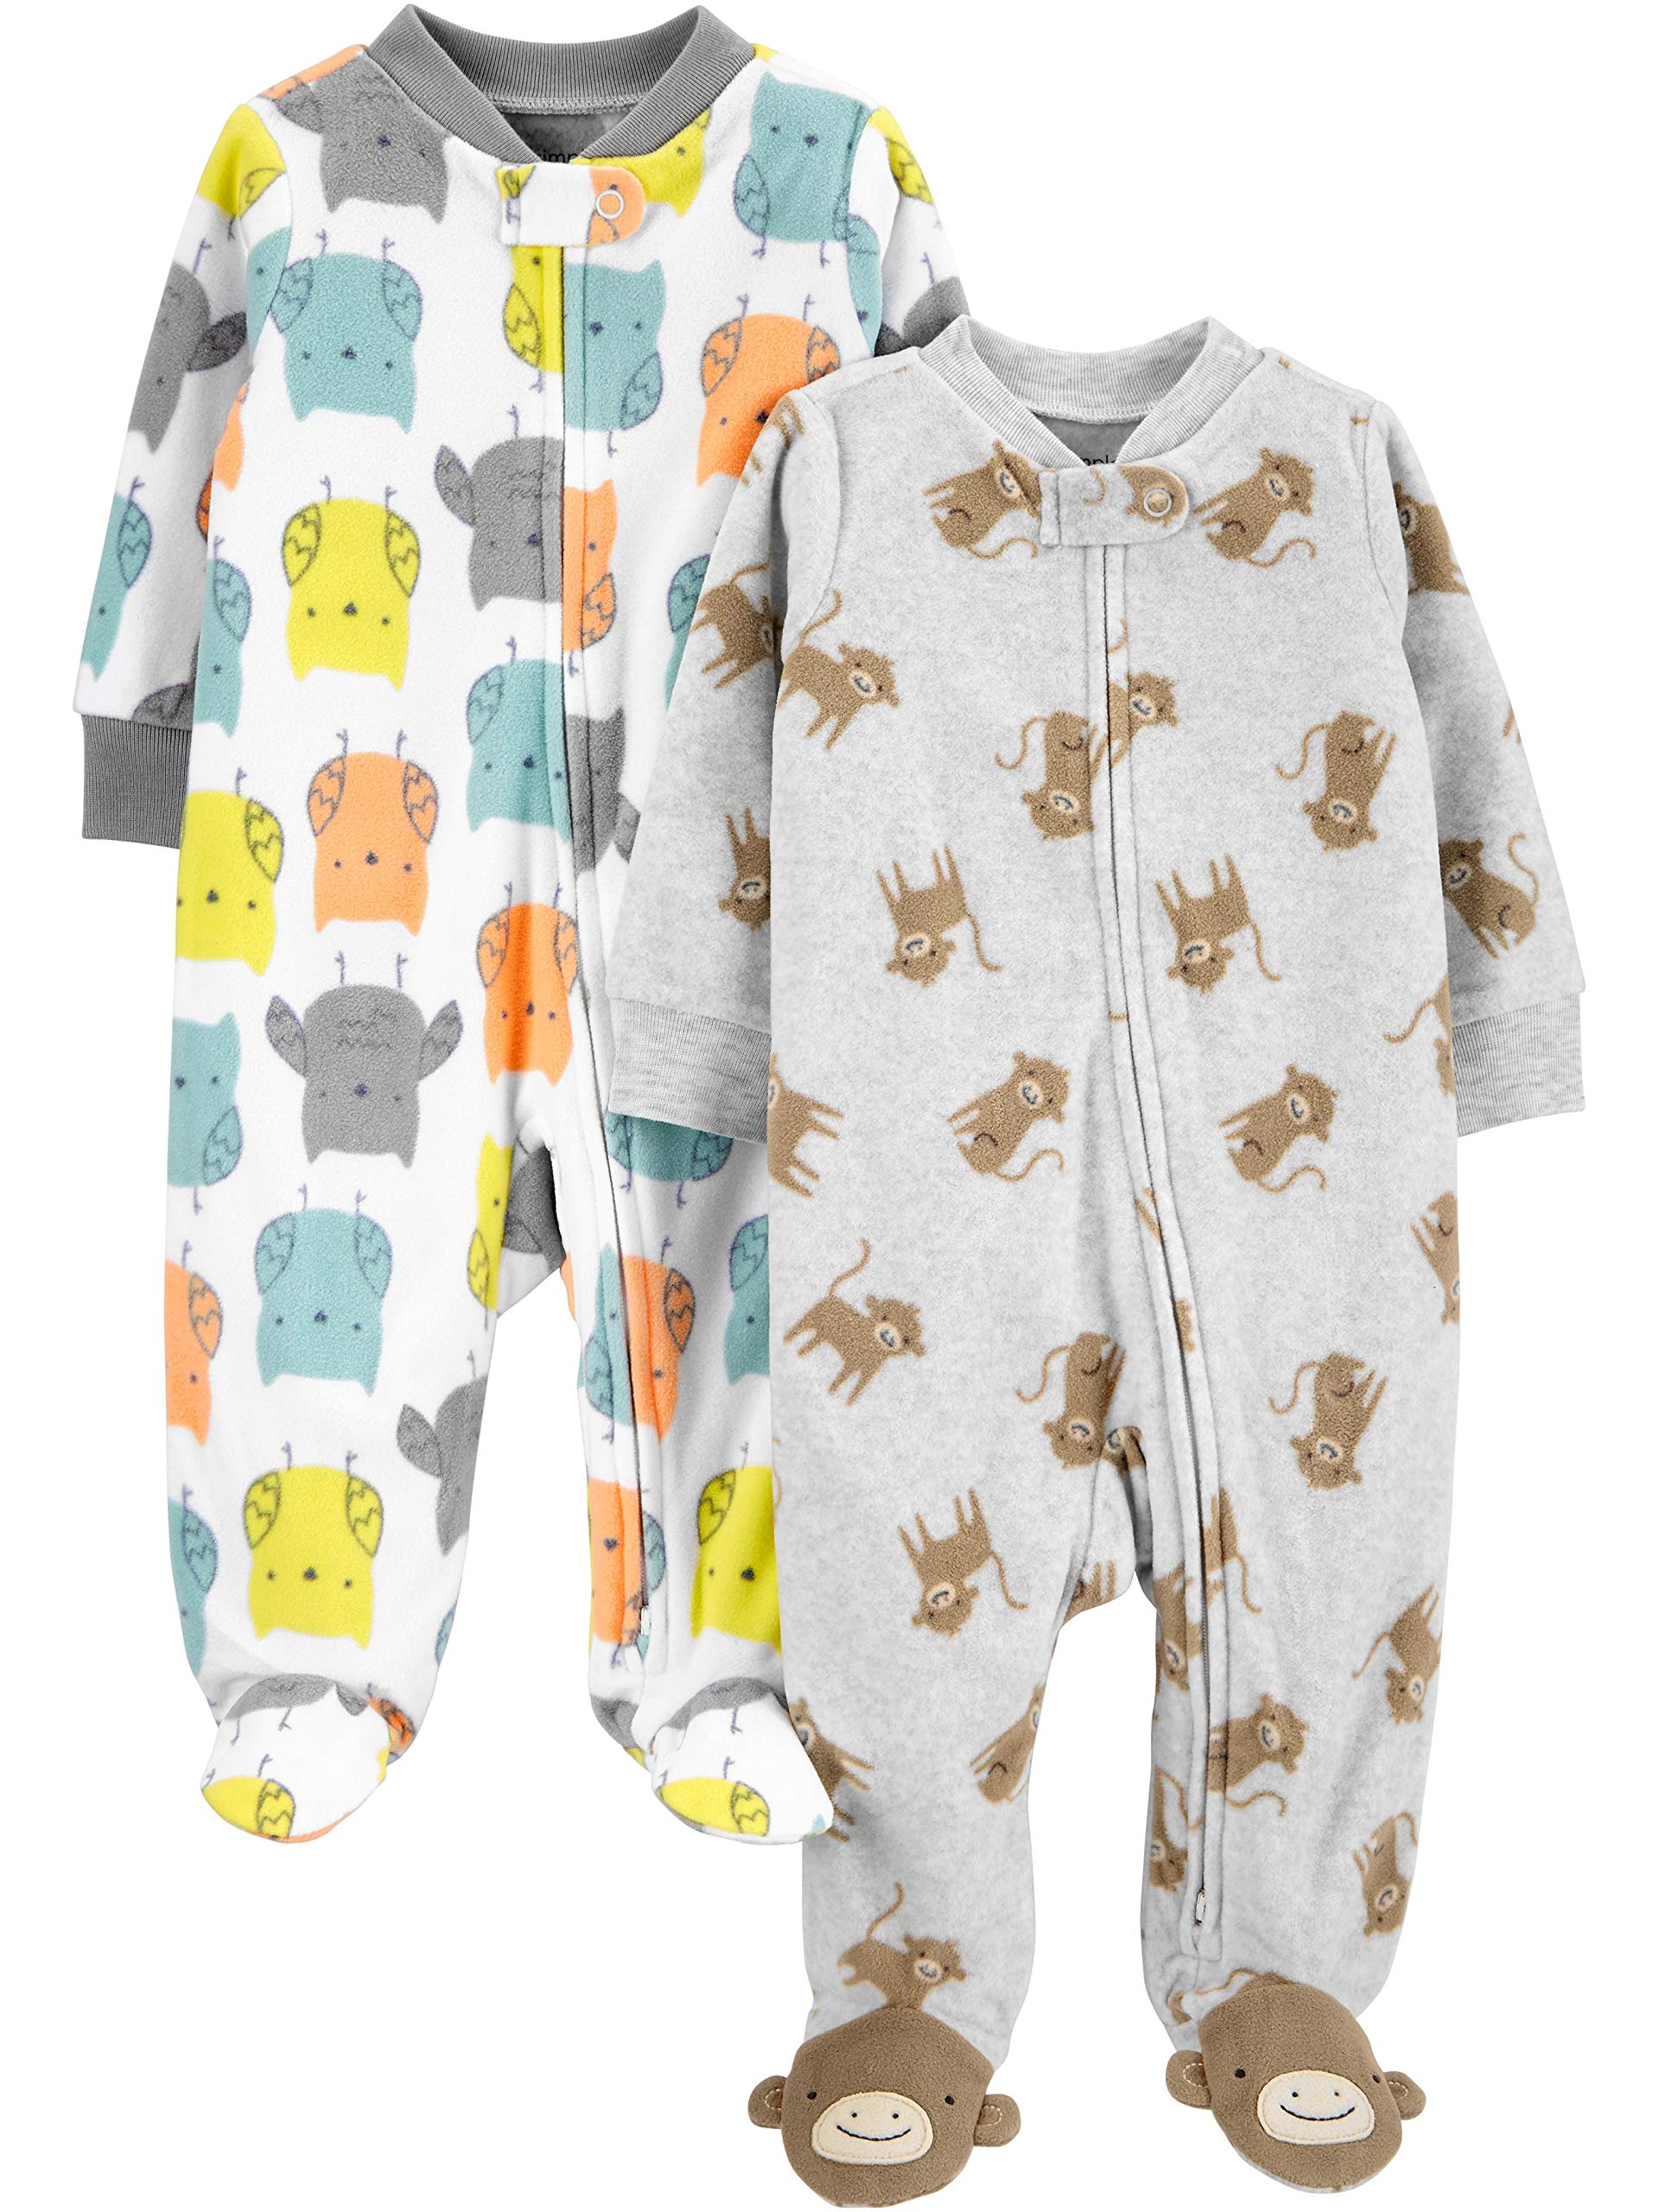 Simple Joys by Carters Unisex Baby 2-Pack Fleece Footed Sleep and Play Pack of 2